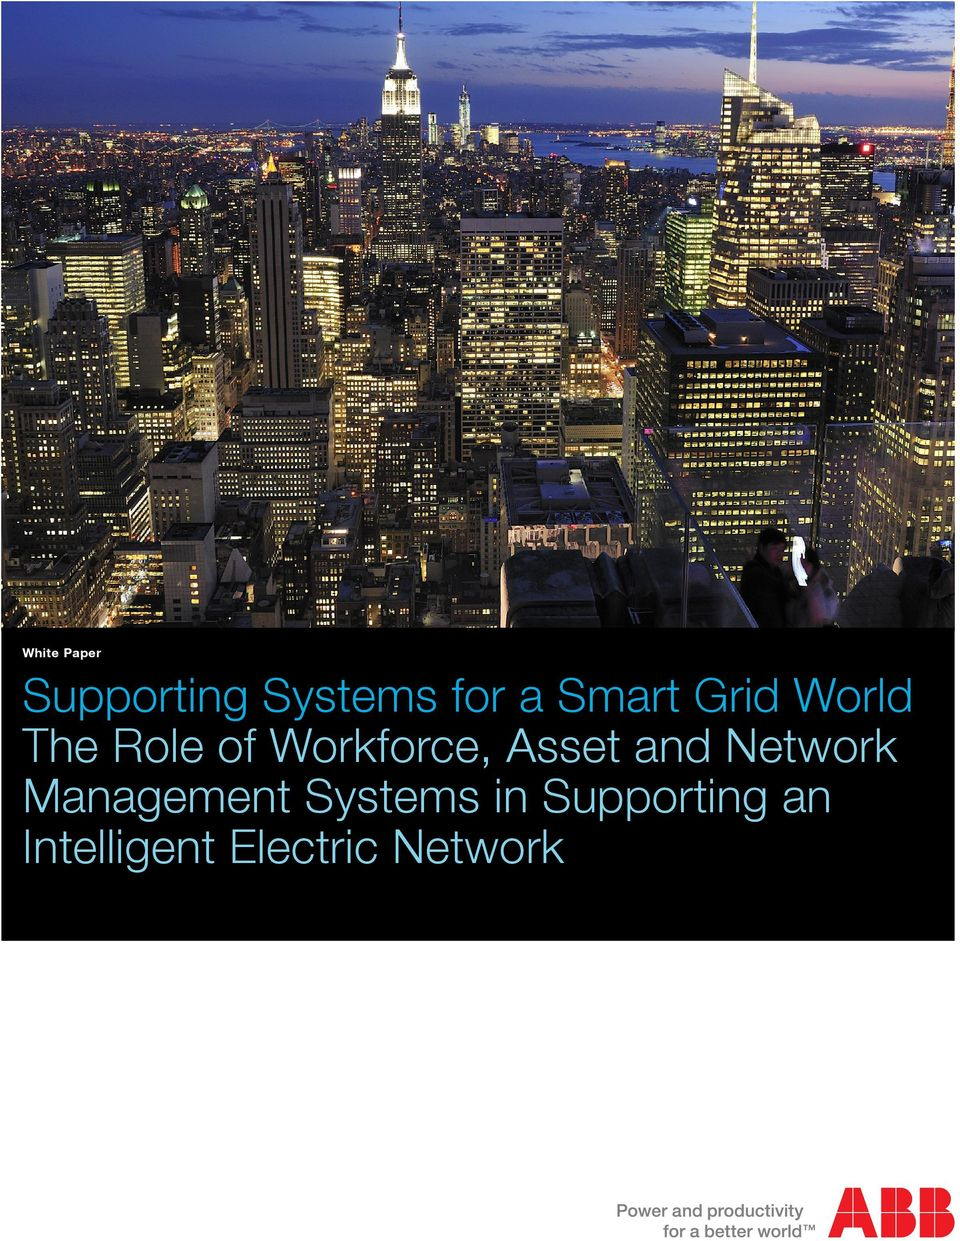 Asset and Network Management Systems in